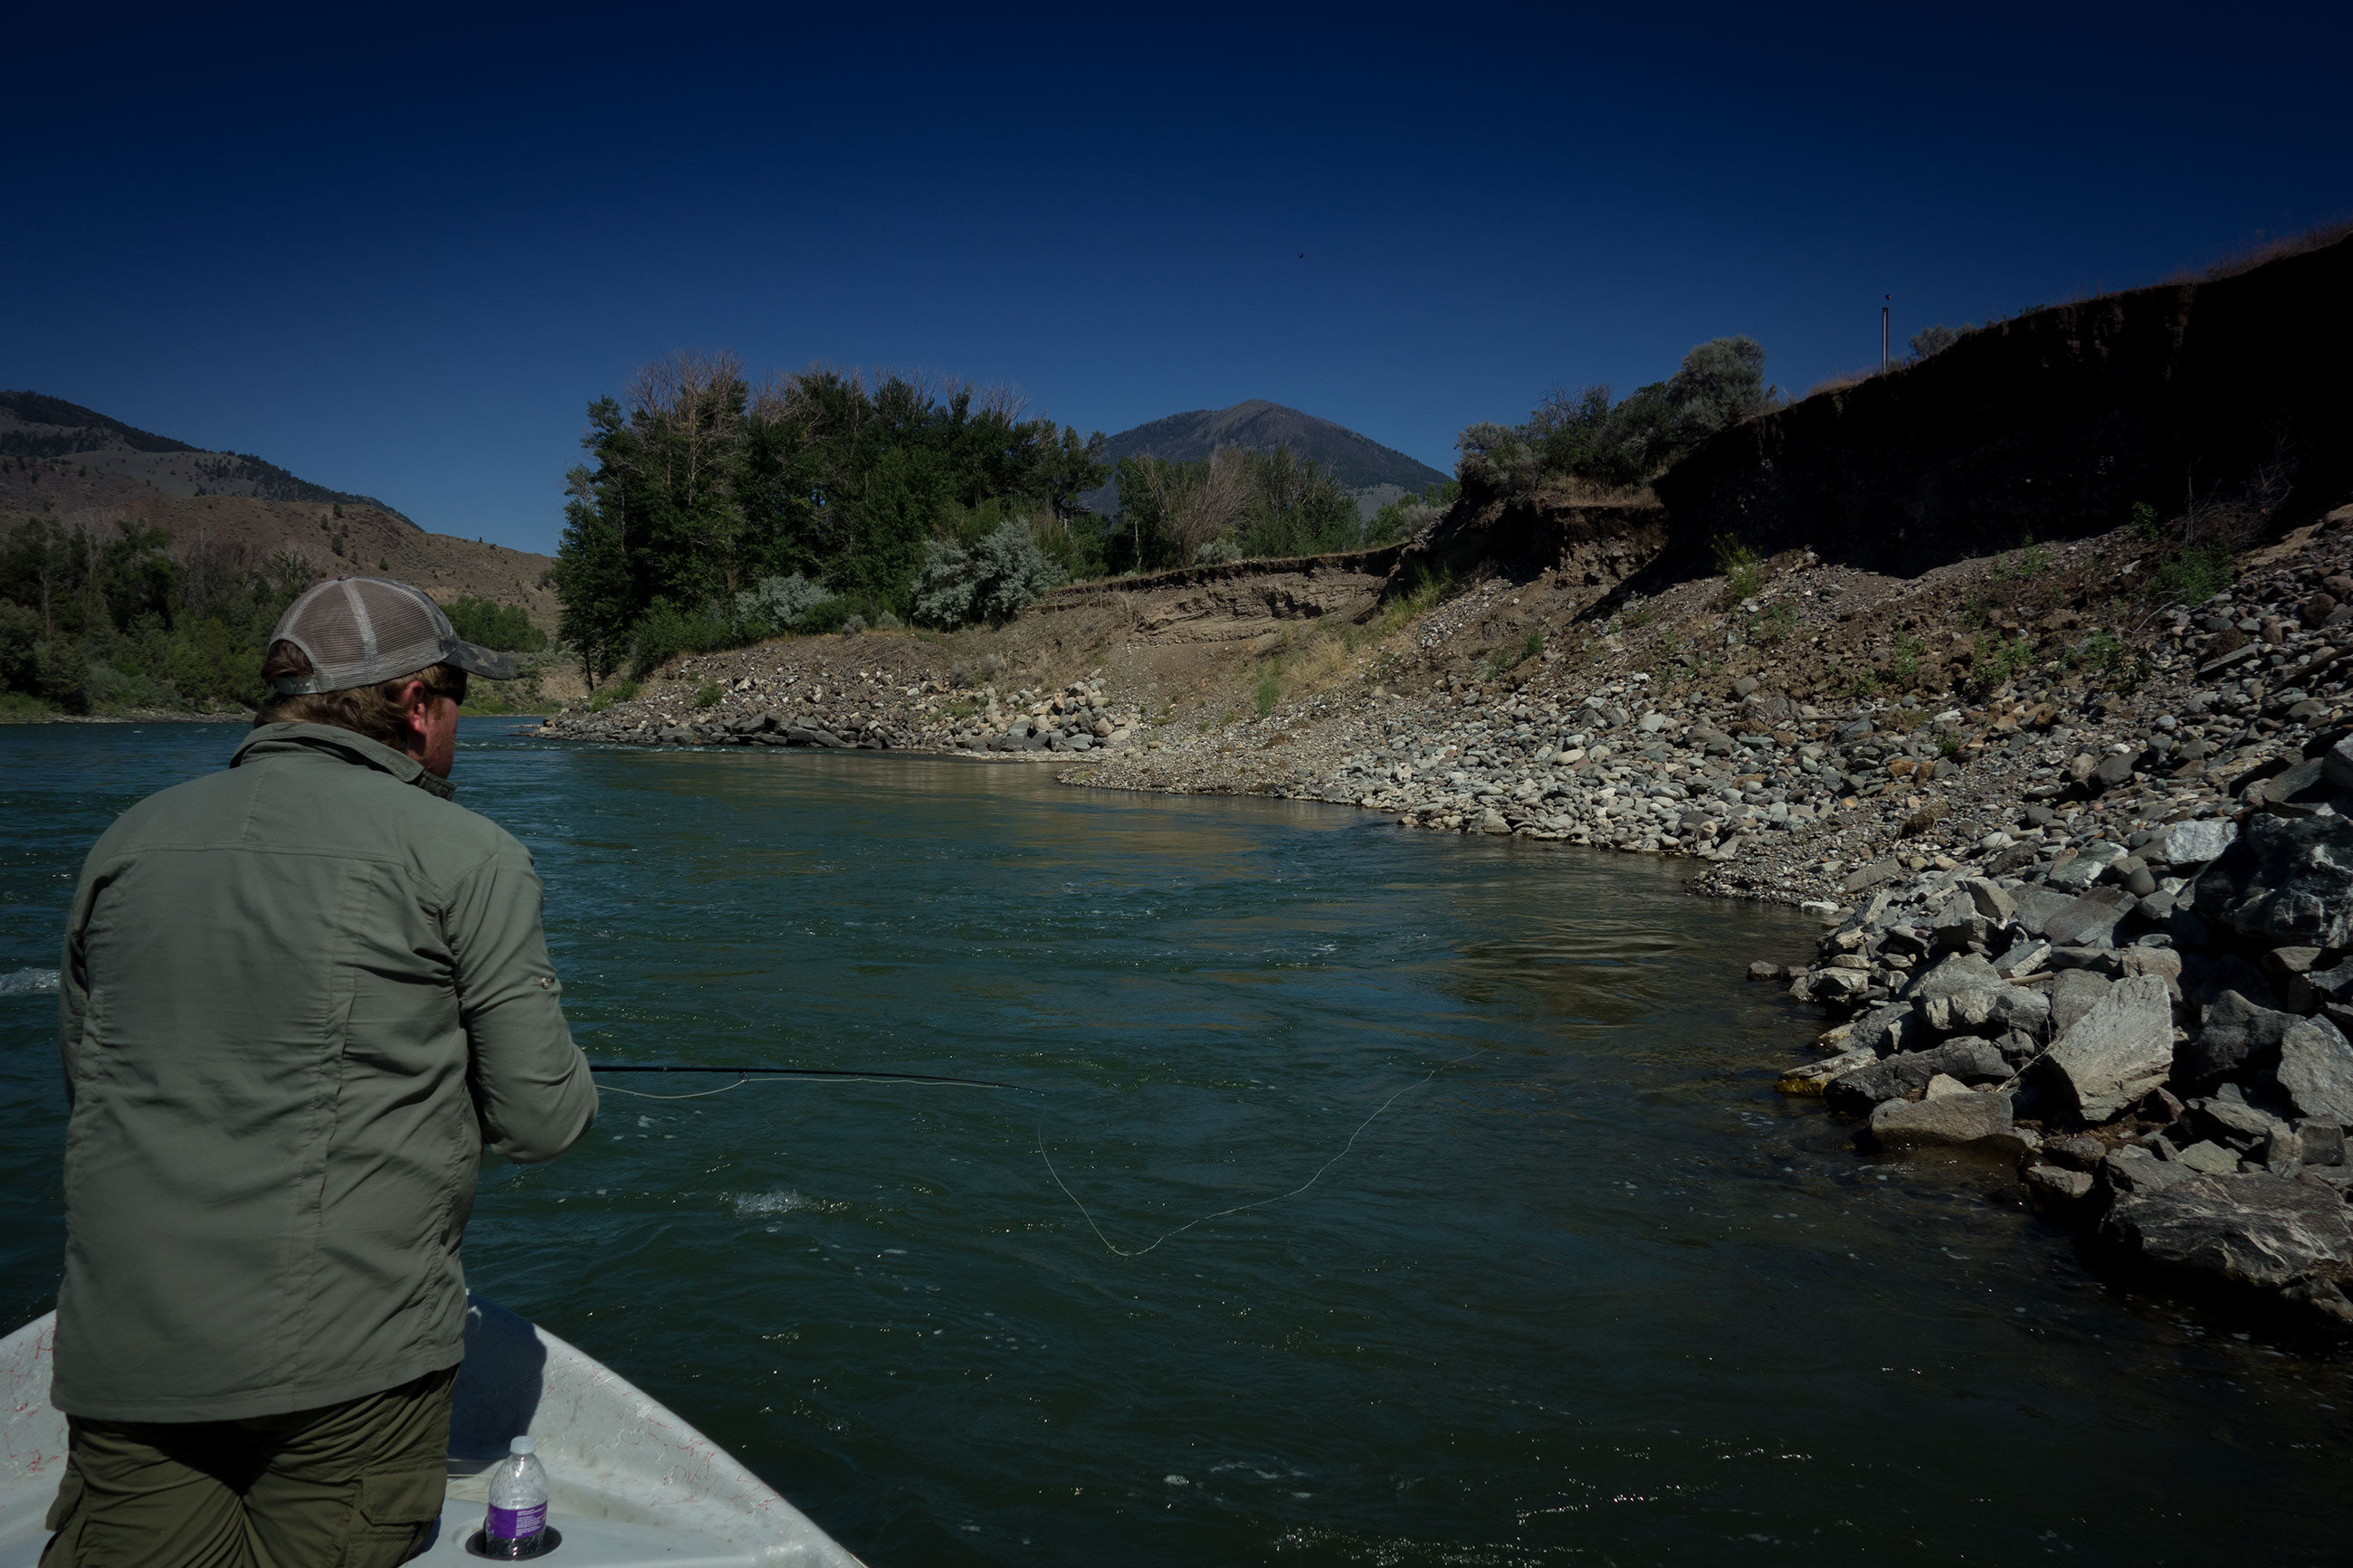 Searching the edges with double dry fly rigs